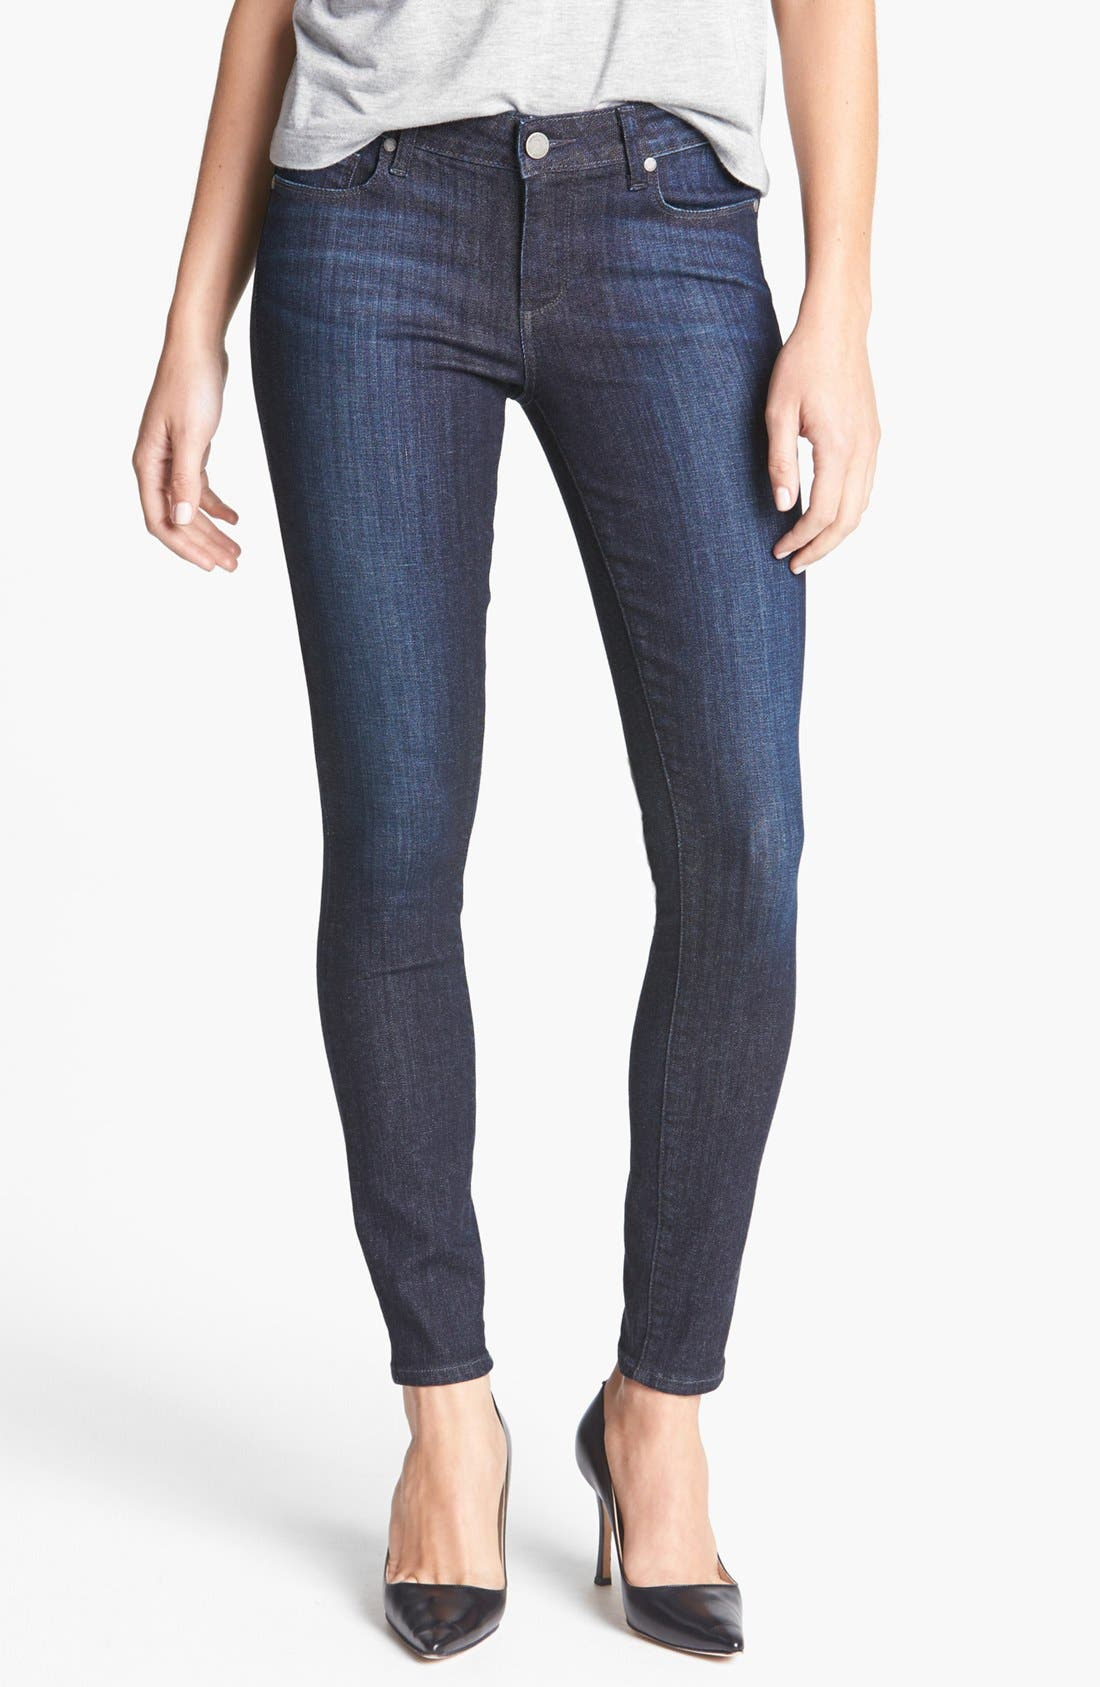 Alternate Image 1 Selected - Paige Denim 'Verdugo' Ultra Skinny Jeans (Rainier)